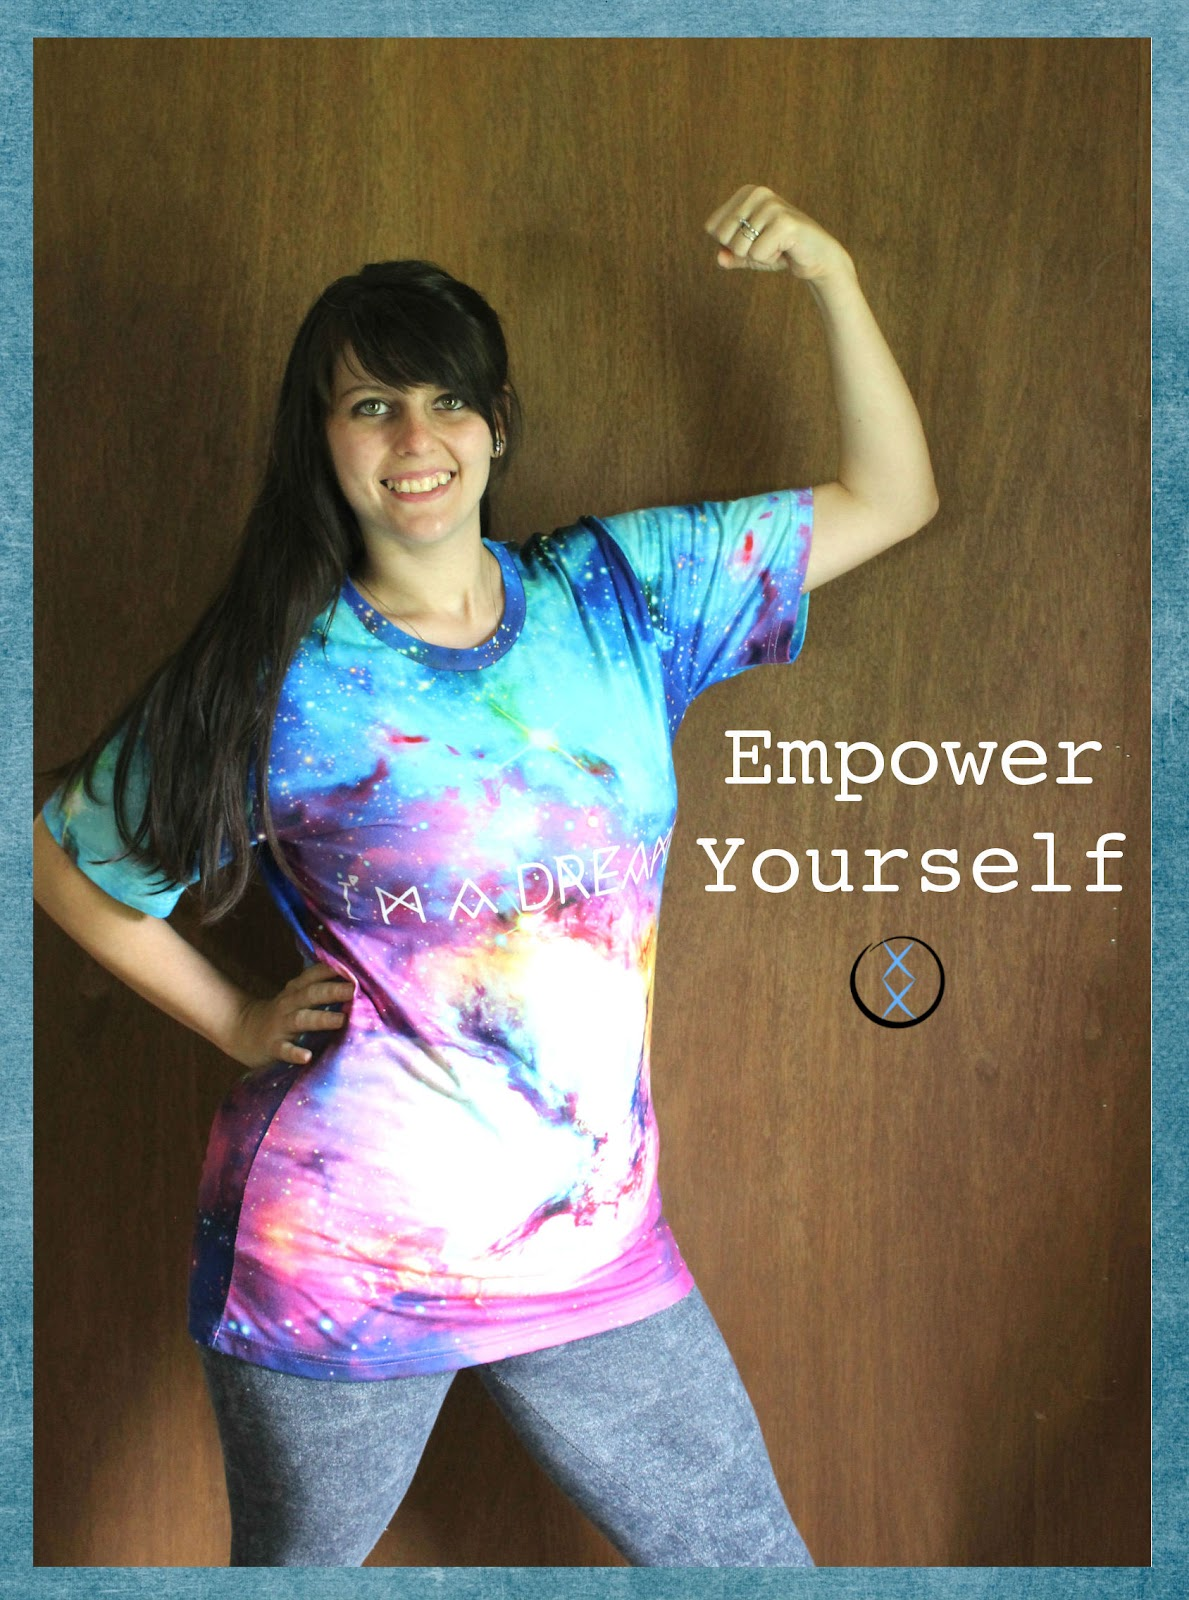 empower yourself.jpg